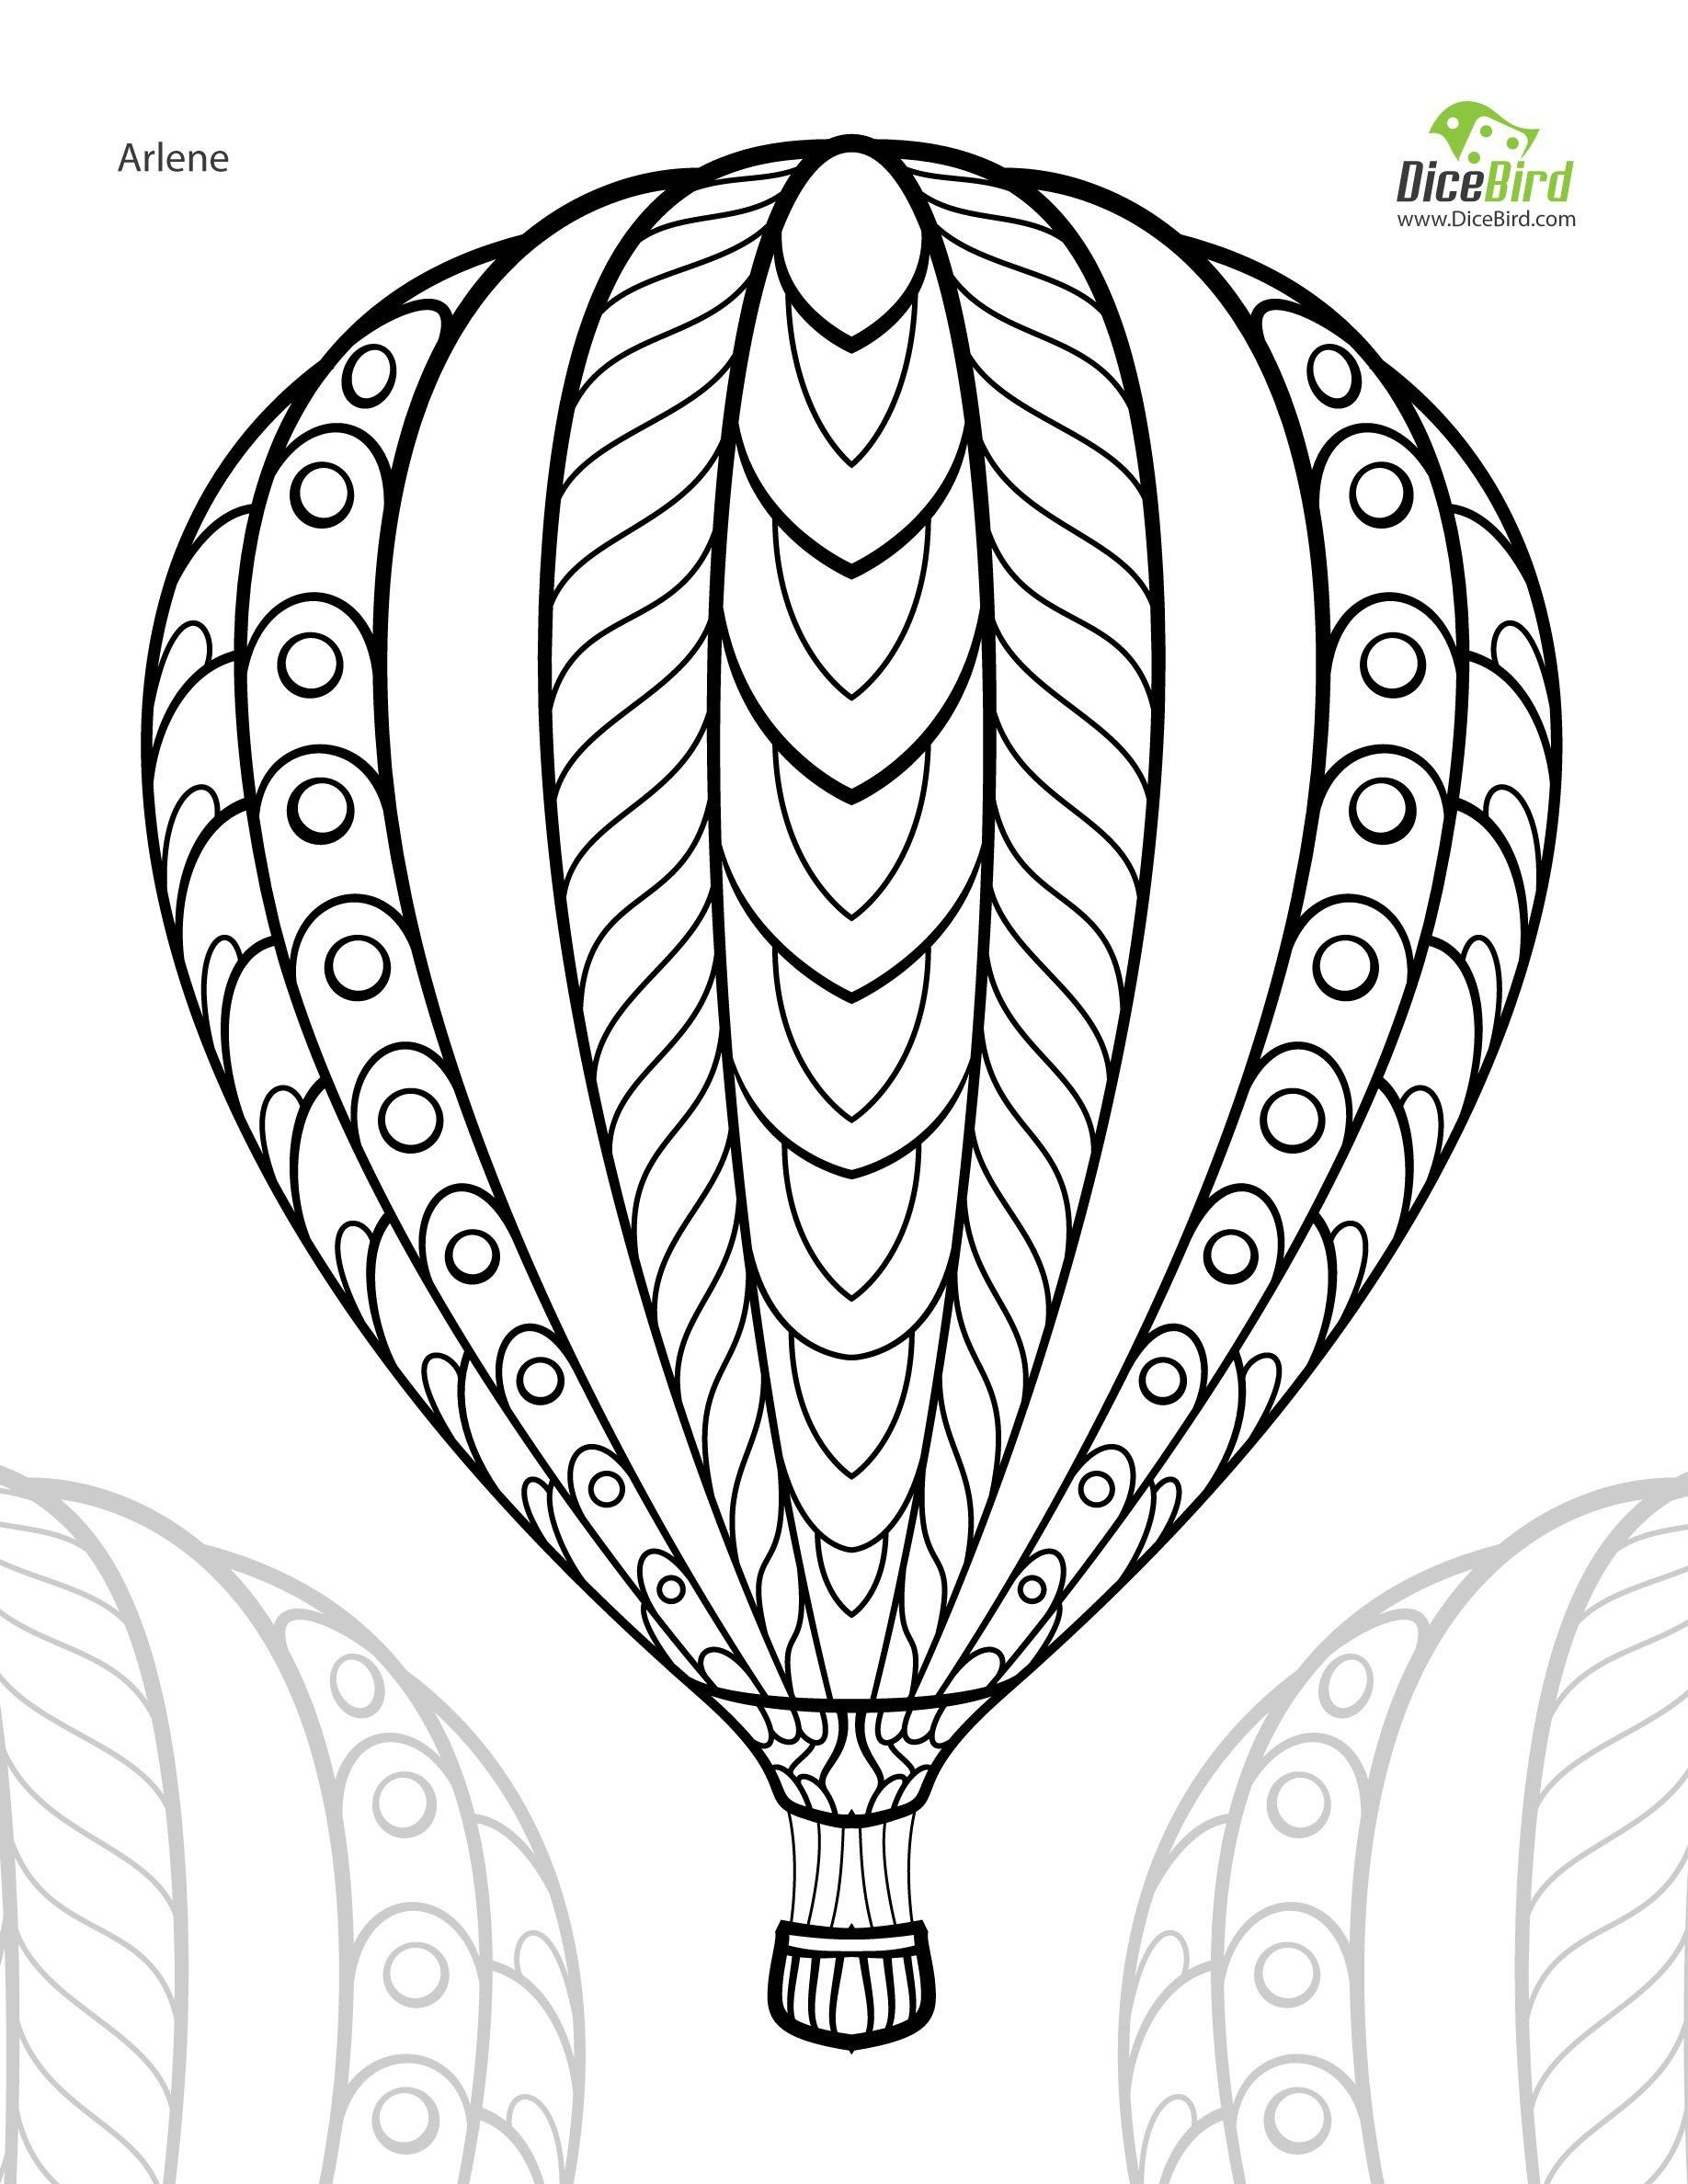 Hot Air Balloon Coloring Page Fresh Coloring Pages 57 Birthday Balloon Coloring Pages Pict Hot Air Balloon Drawing Hot Air Balloon Craft Mandala Coloring Pages